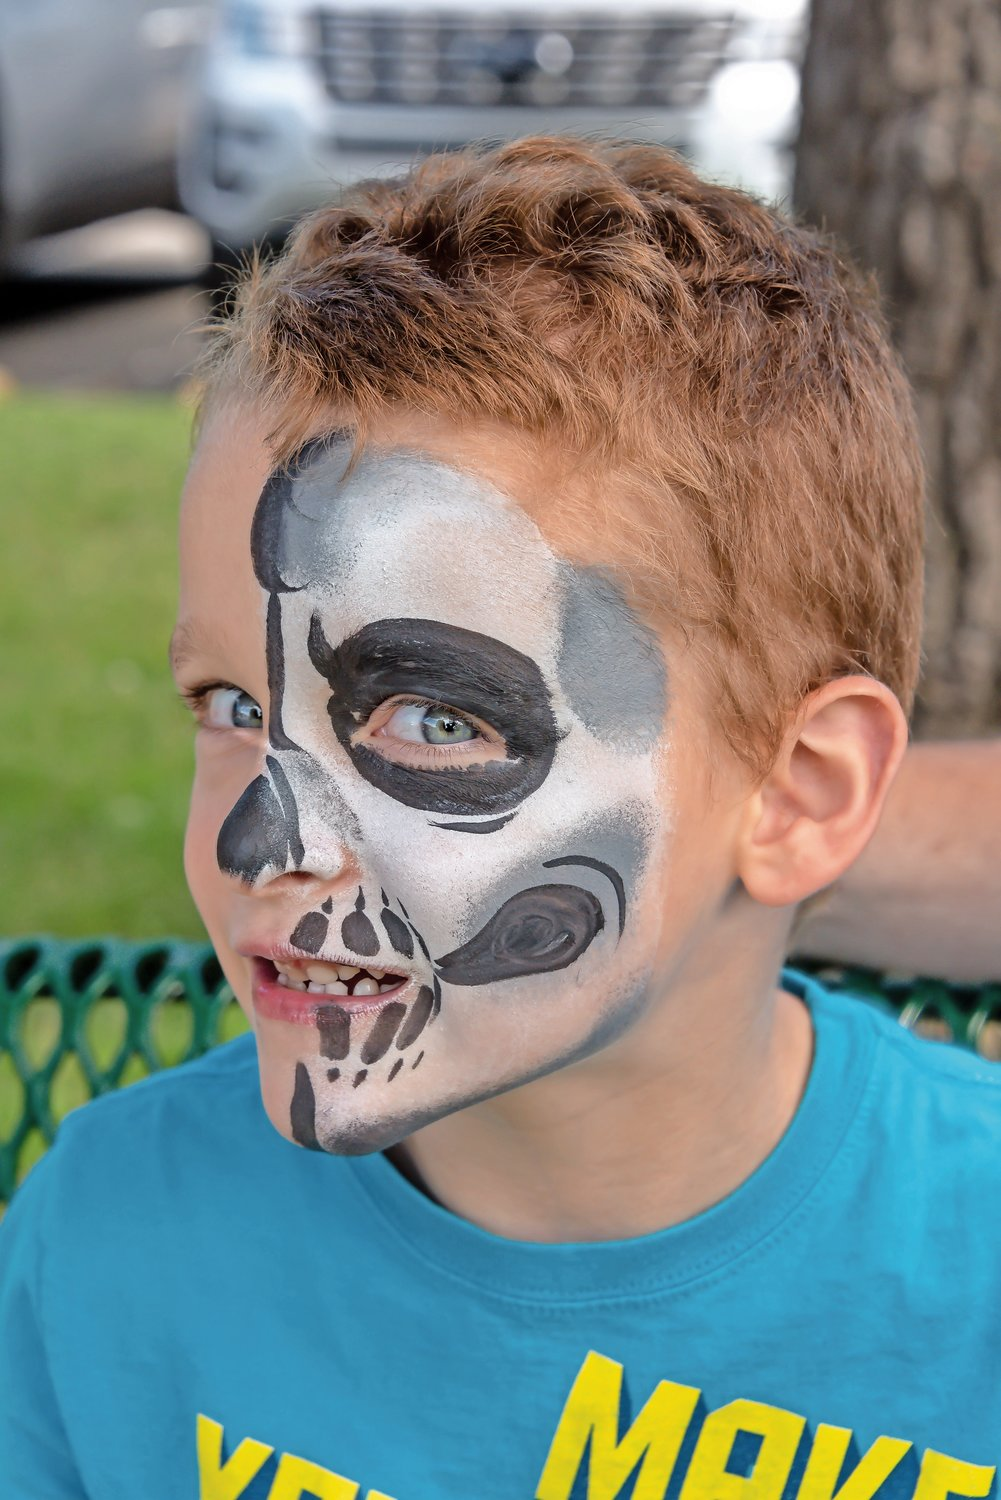 Nick Reed pulled his best skeleton impression to match his impressive face paint.